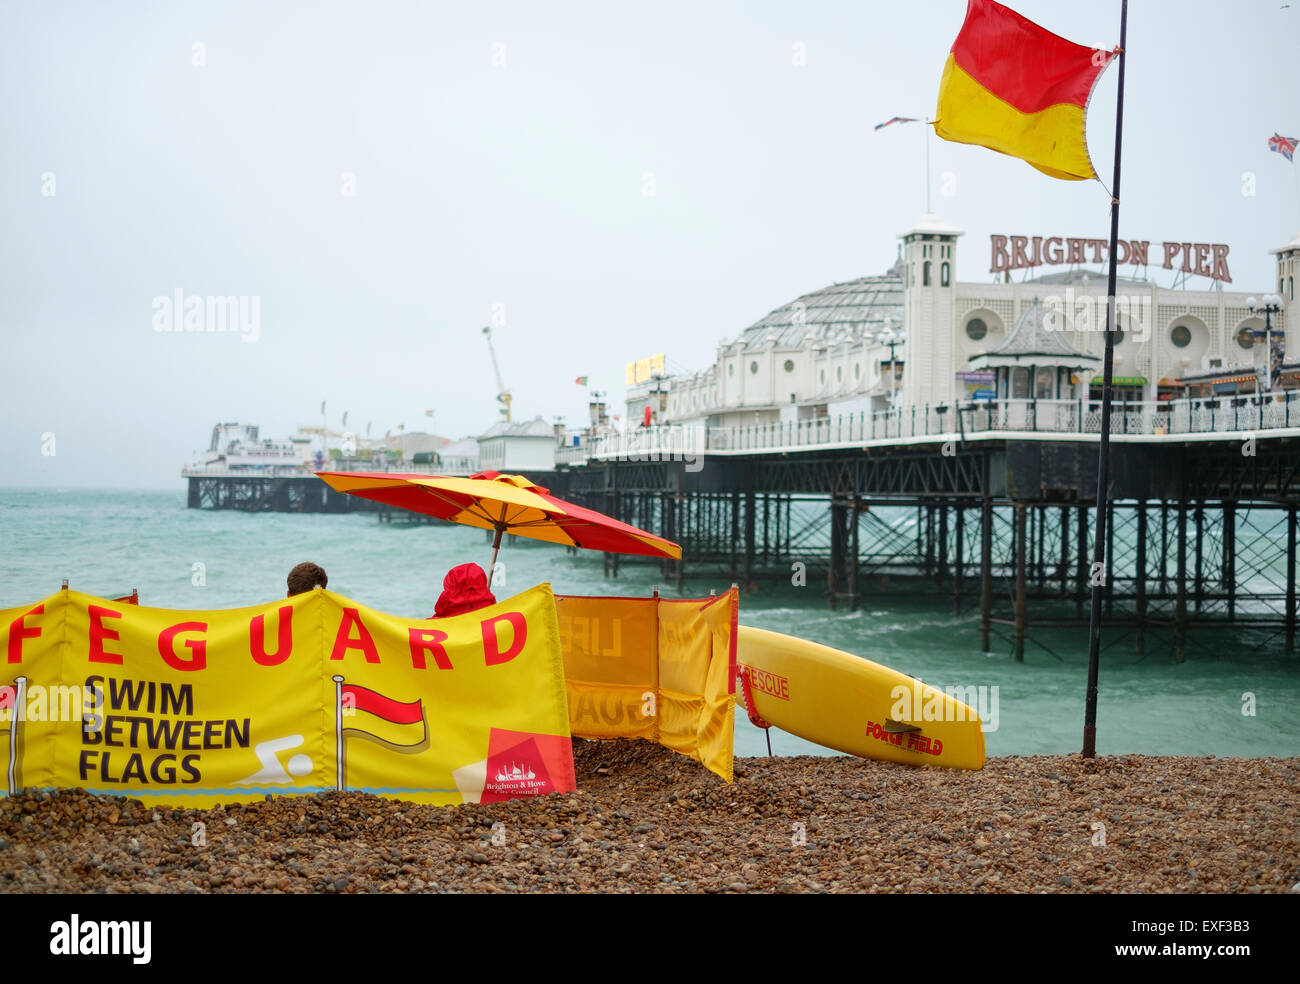 Brighton, UK. 13th July, 2015. UK Weather: An unseasonly wet, windy and cool day at the British seaside - lifeguards - Stock Image